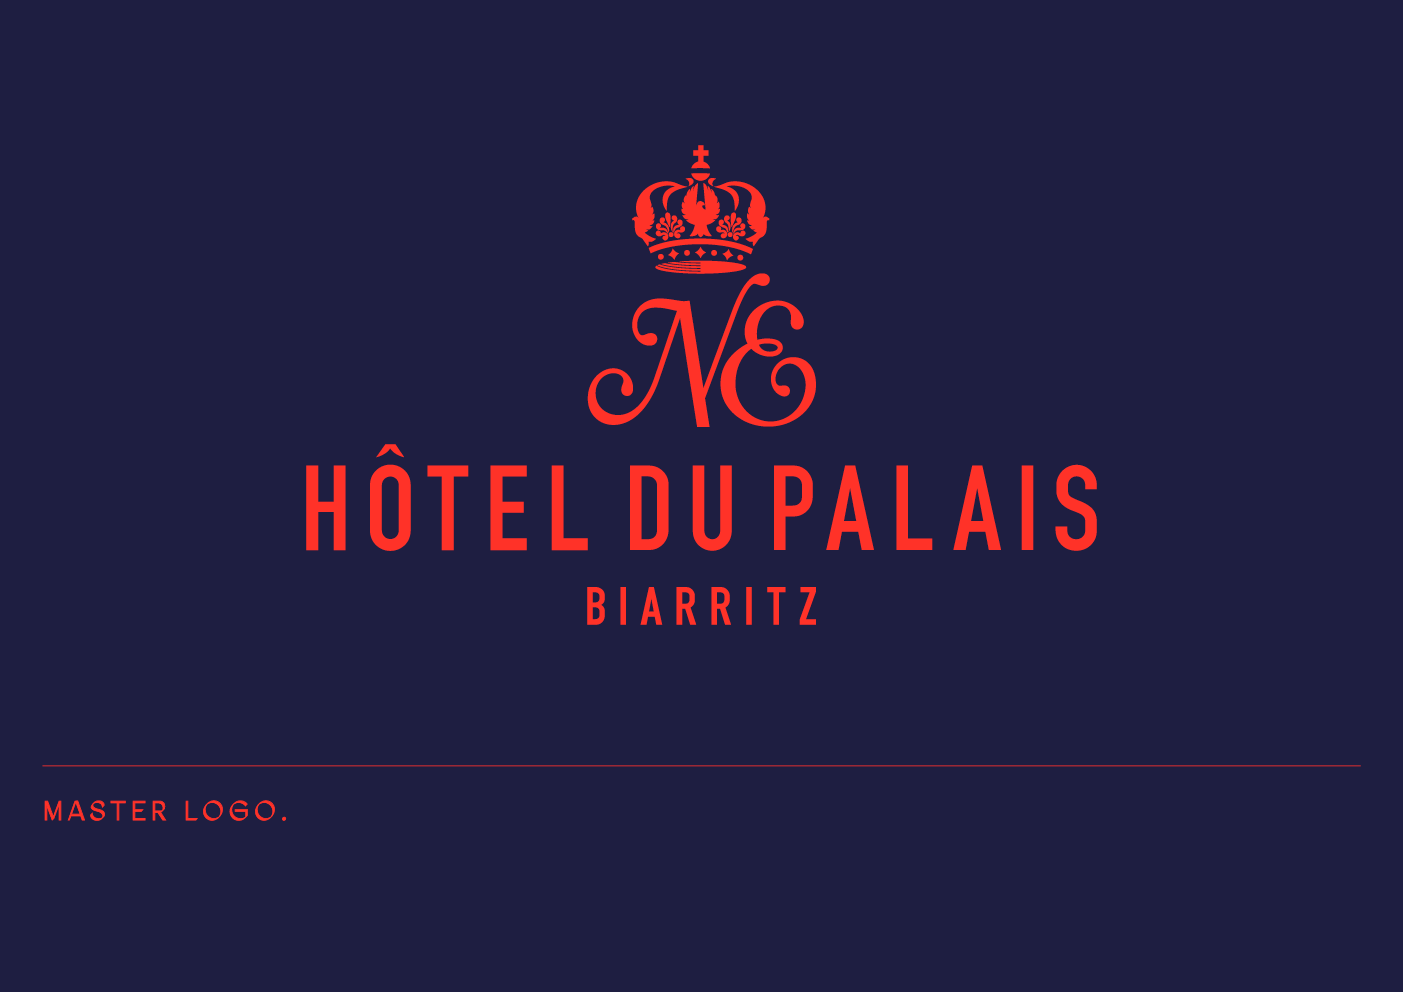 New Branding and Design Project for Hôtel du Palais in Biarritz